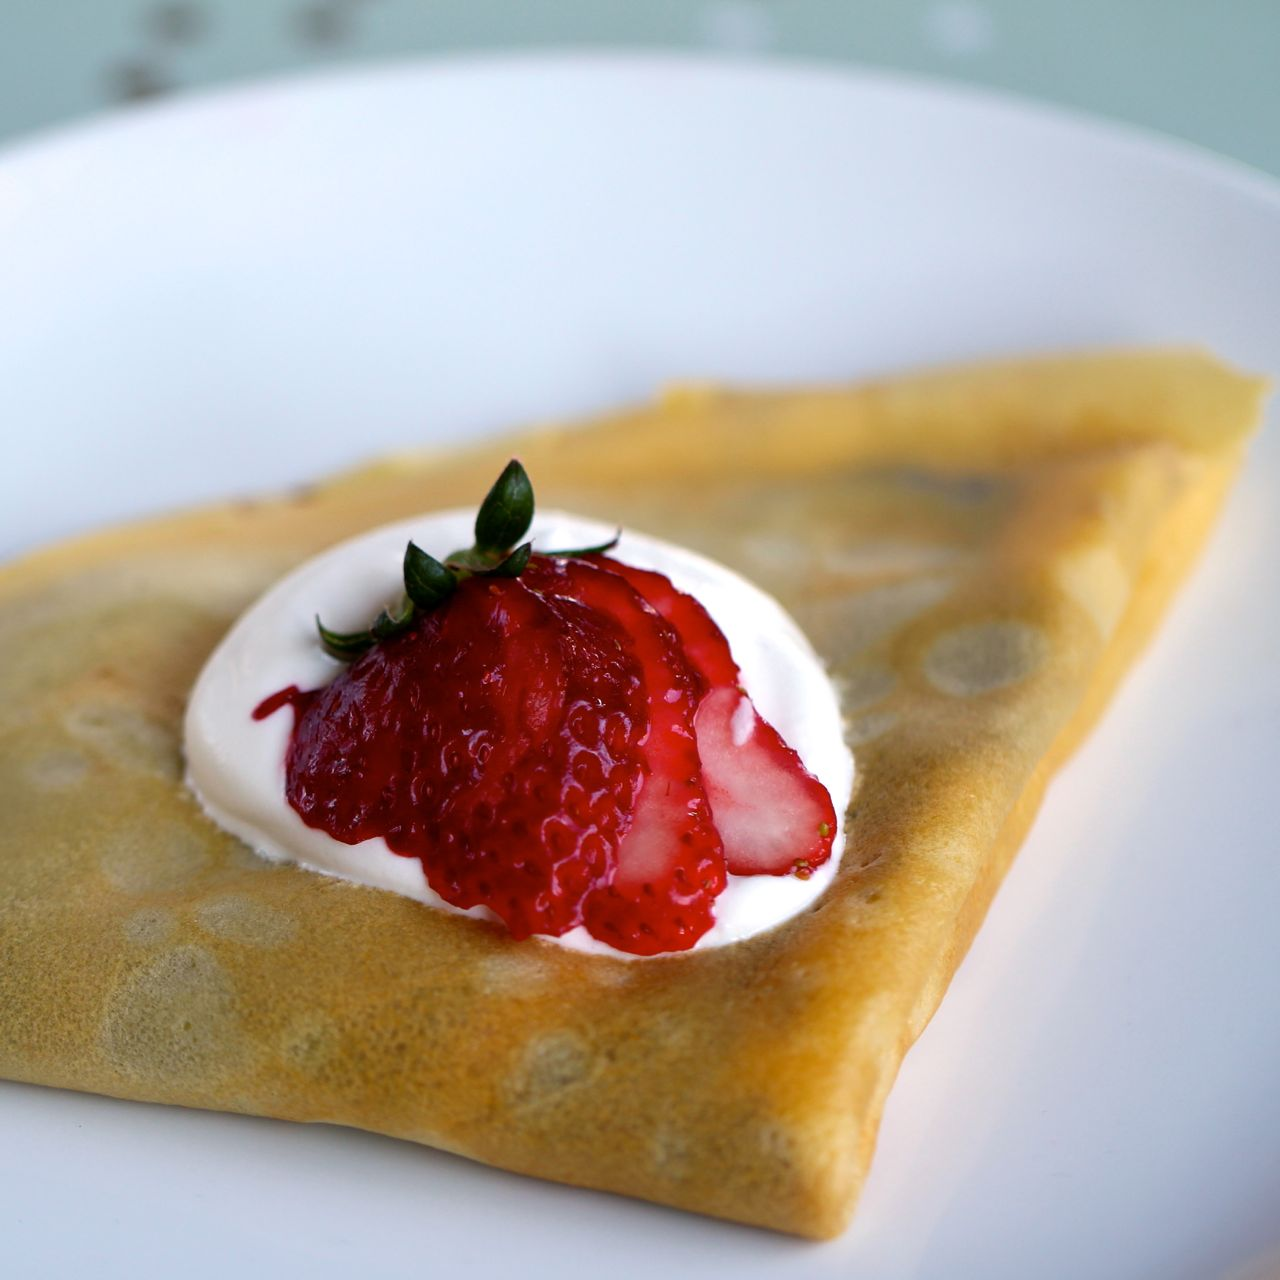 Nutella & Strawberry Crepes from www.alyssaandcarla.com